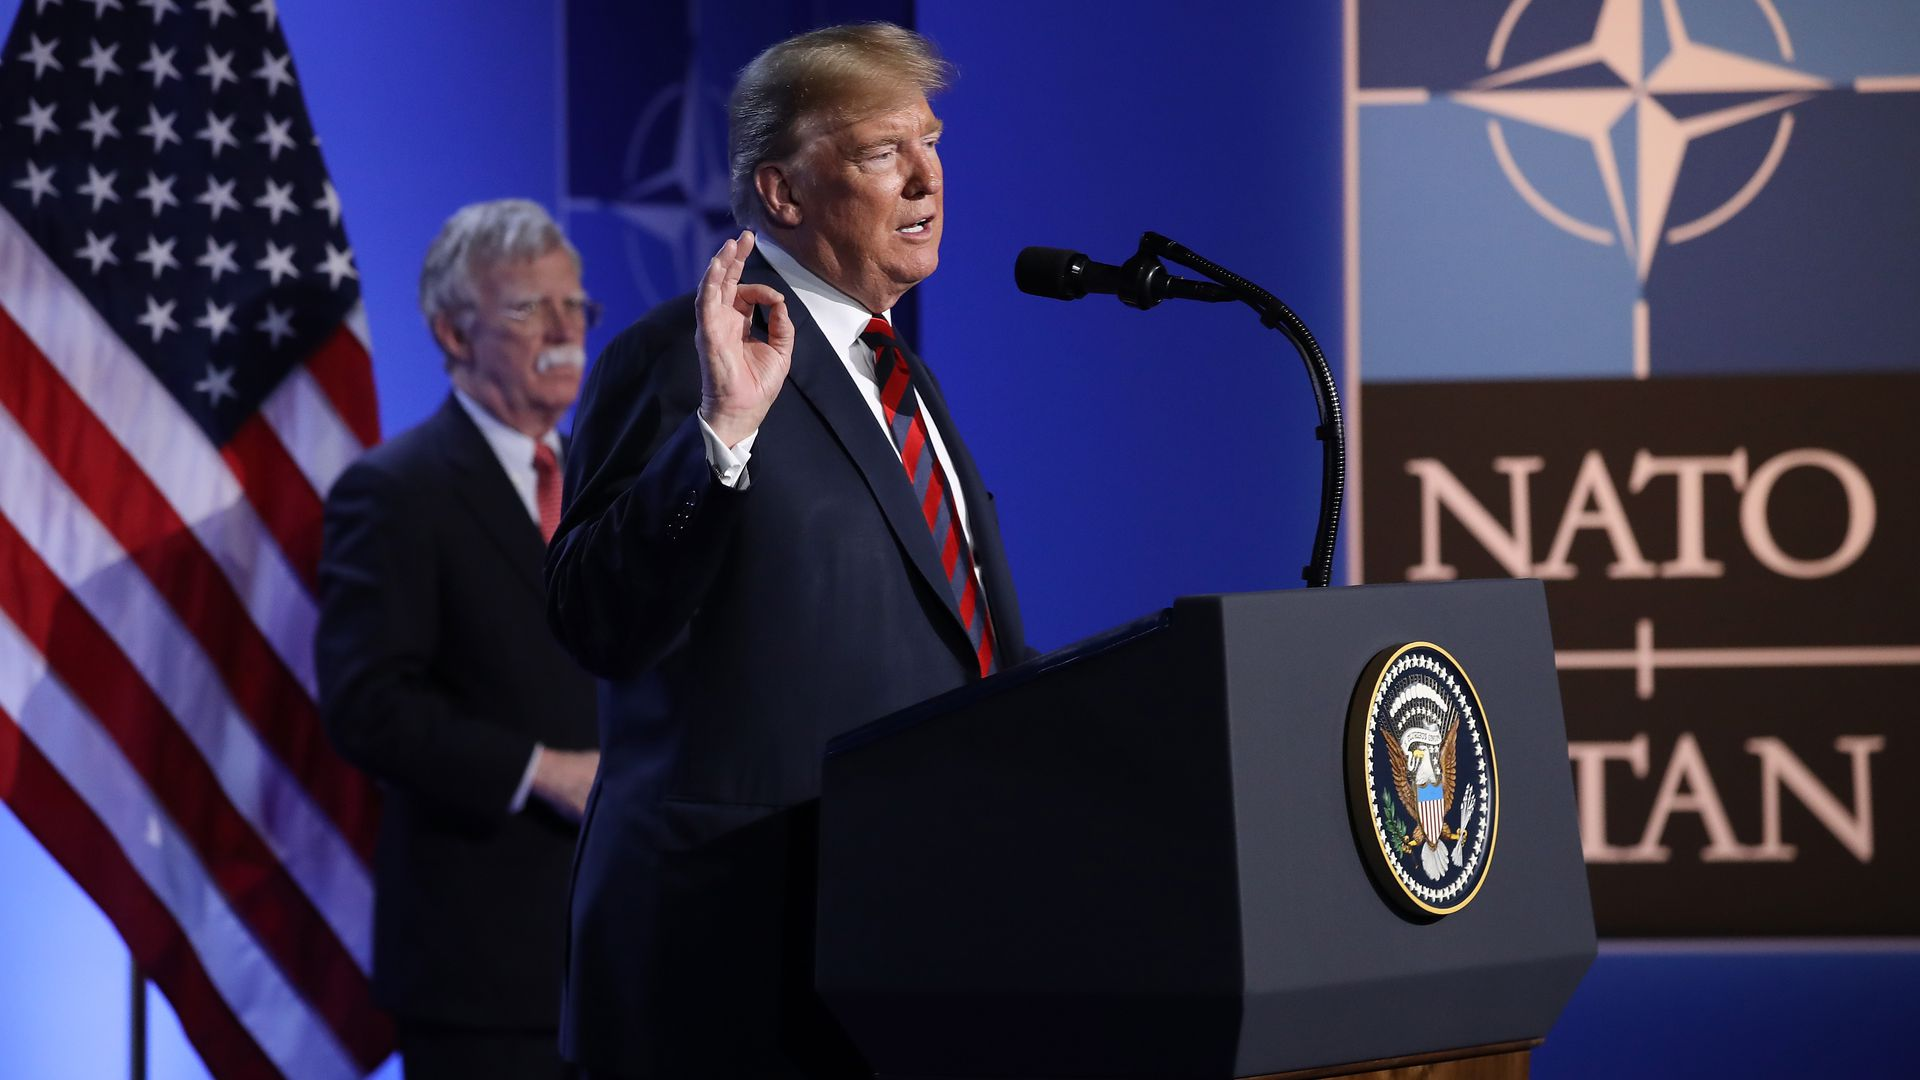 President trump speaks at NATO summit